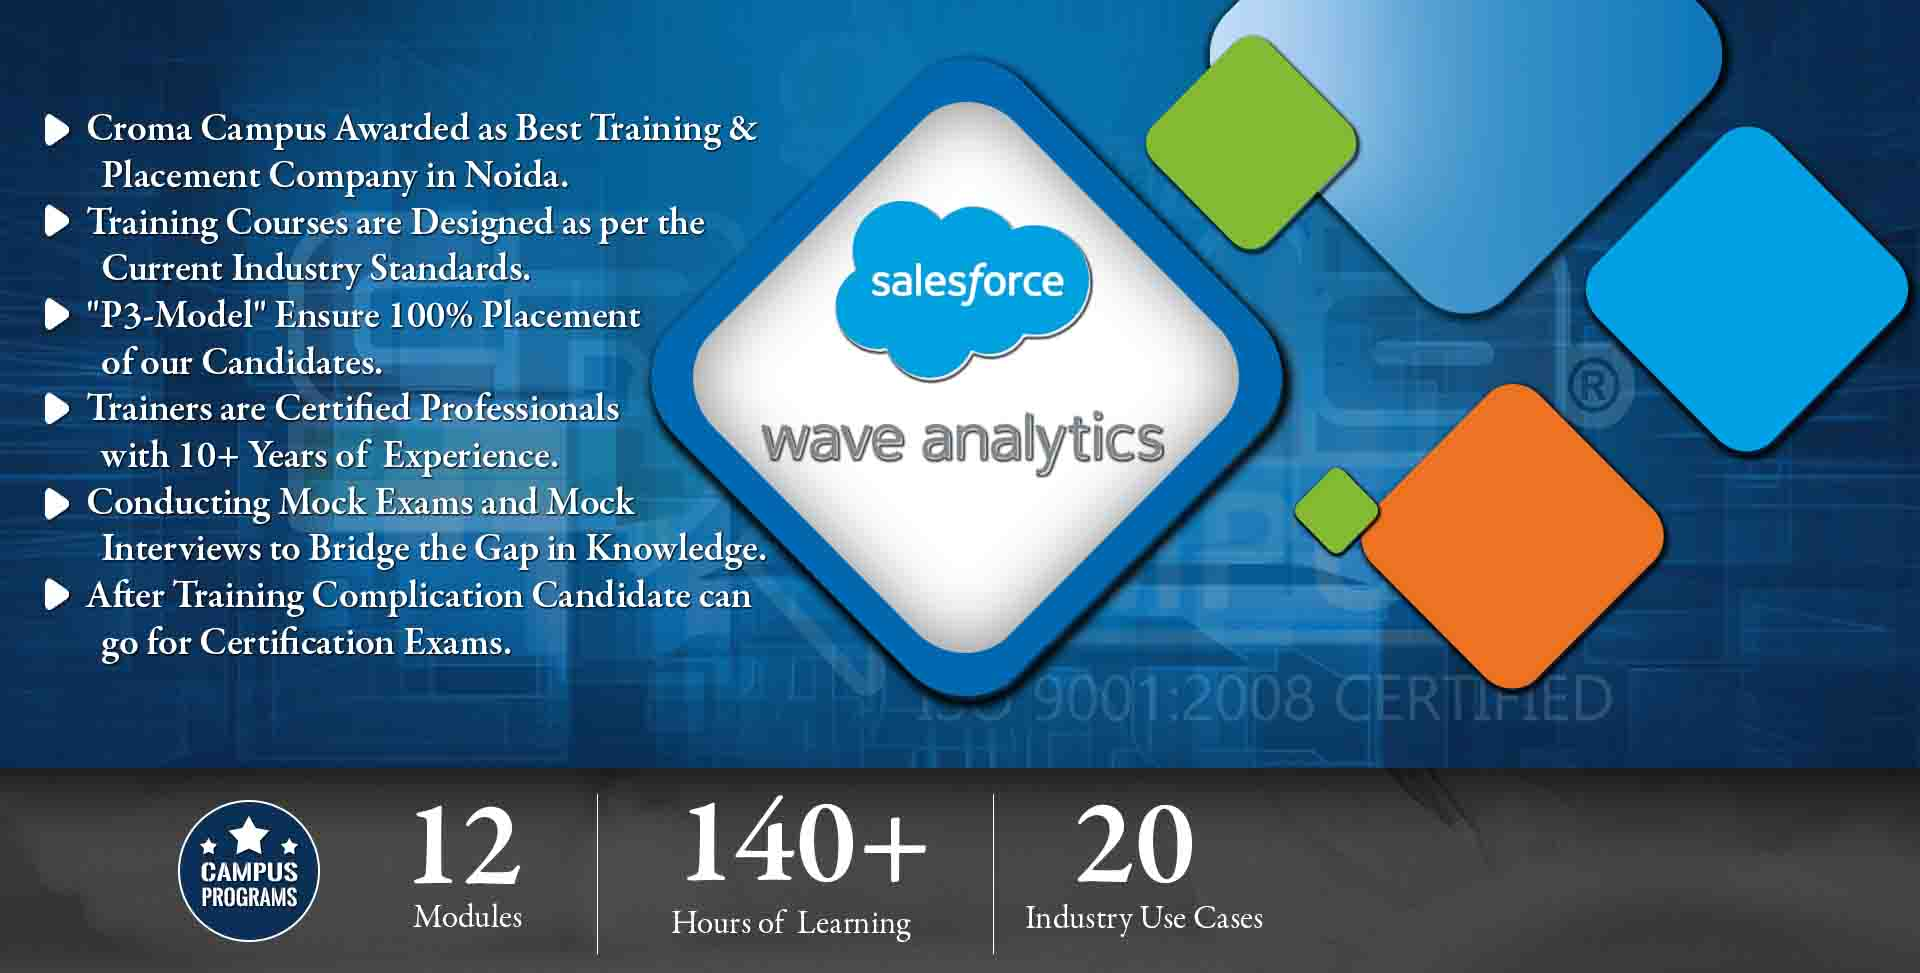 SALESFORCE WAVE ANALYTICS Training in Delhi- Croma Campus